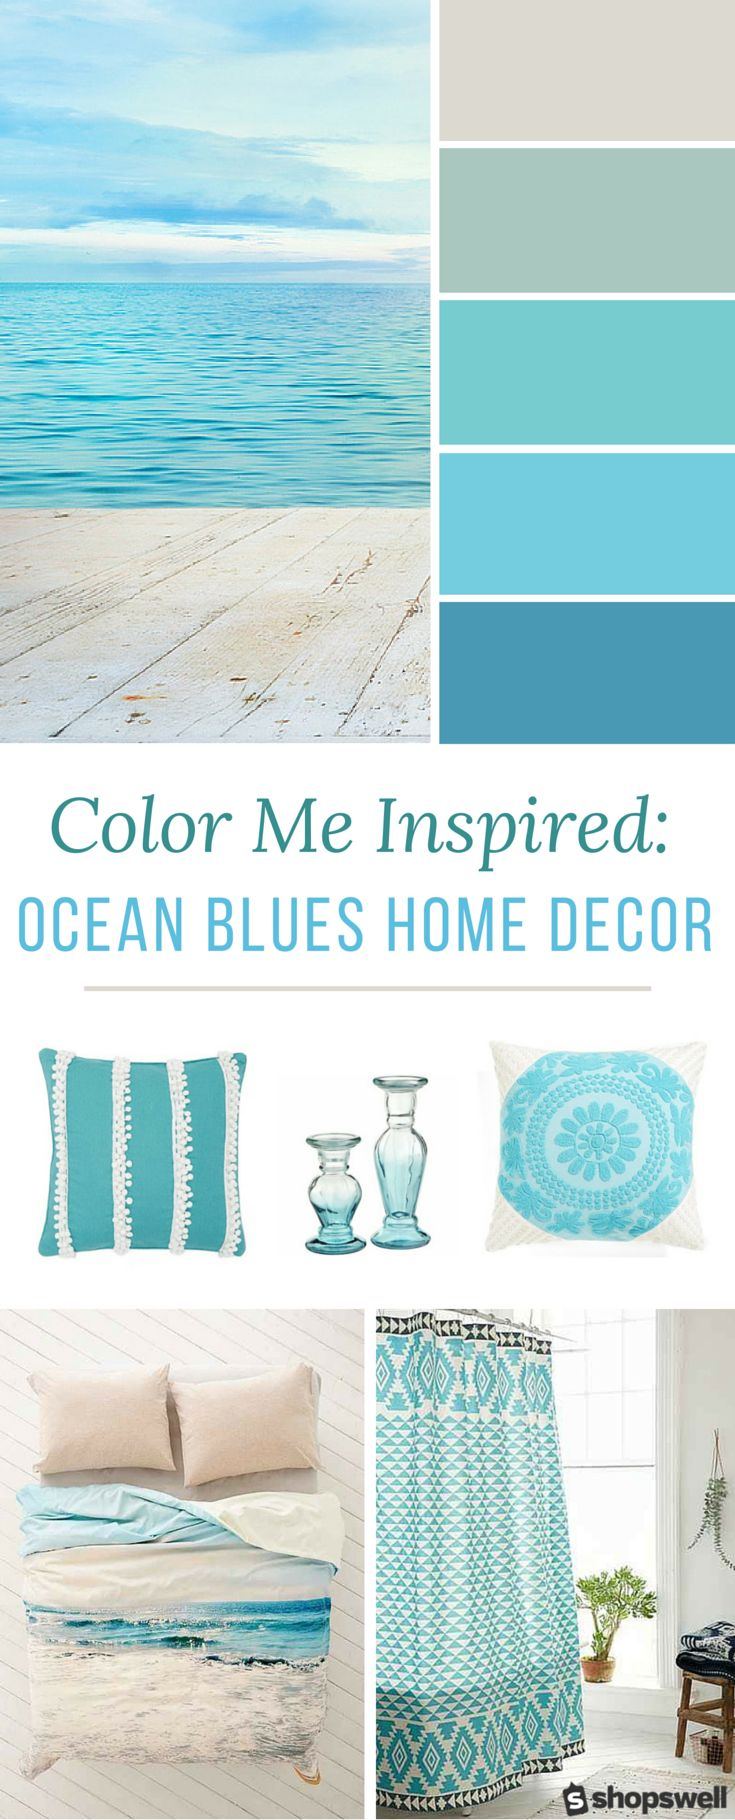 Decor nautical shell mirrors w sea glass starfish amp pearls blue - Blue Ocean Tones Are The Inspiration Behind This Summer Home Decor Collection Decorate Your Beach